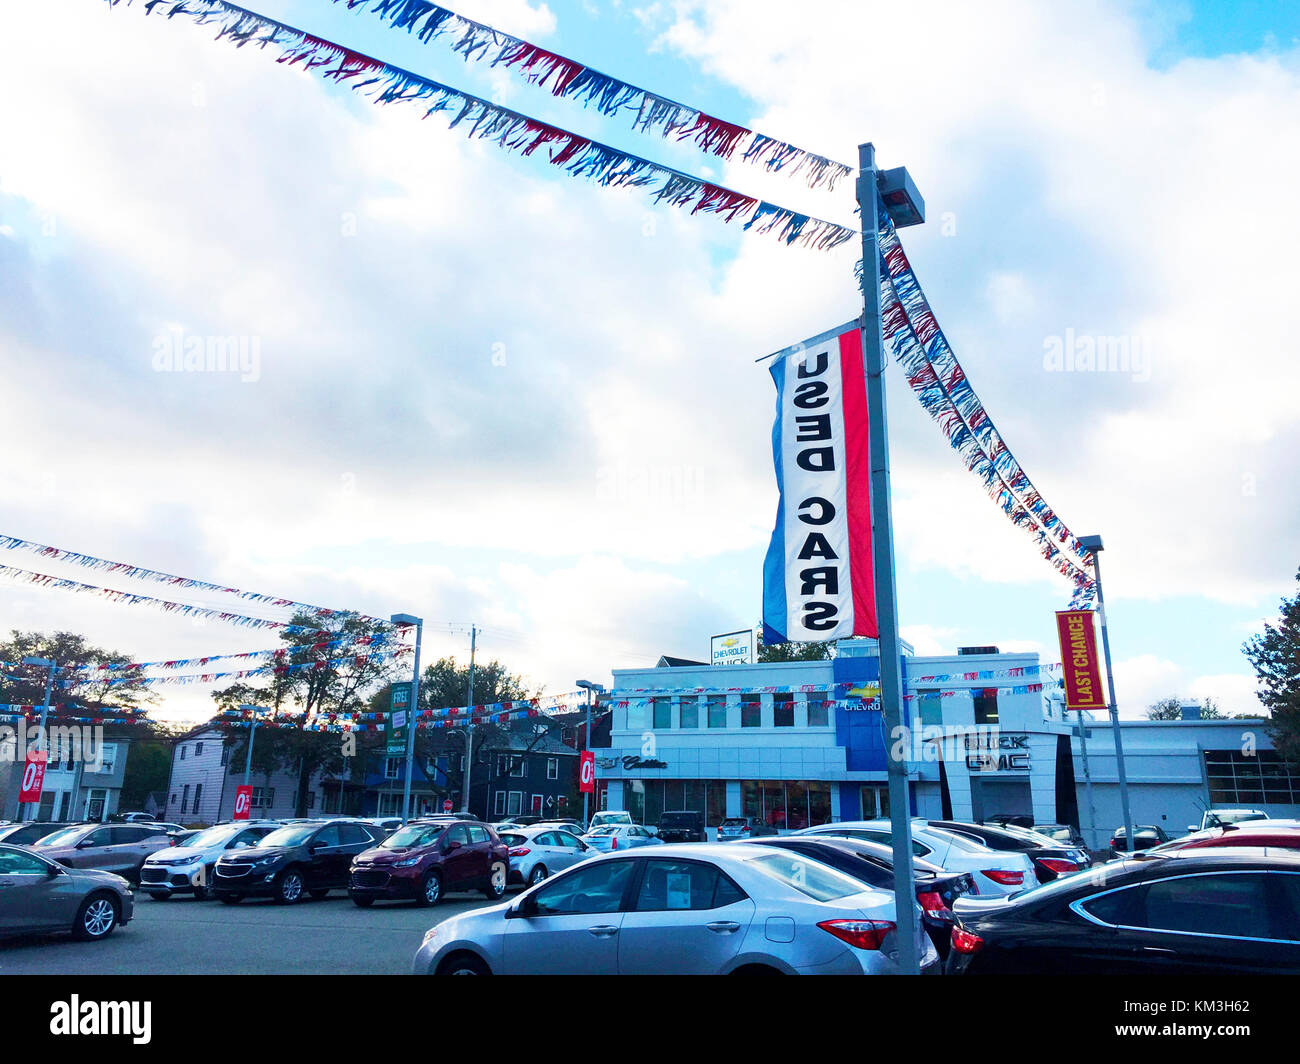 Used Cars For Sale Stock Photos Amp Used Cars For Sale Stock